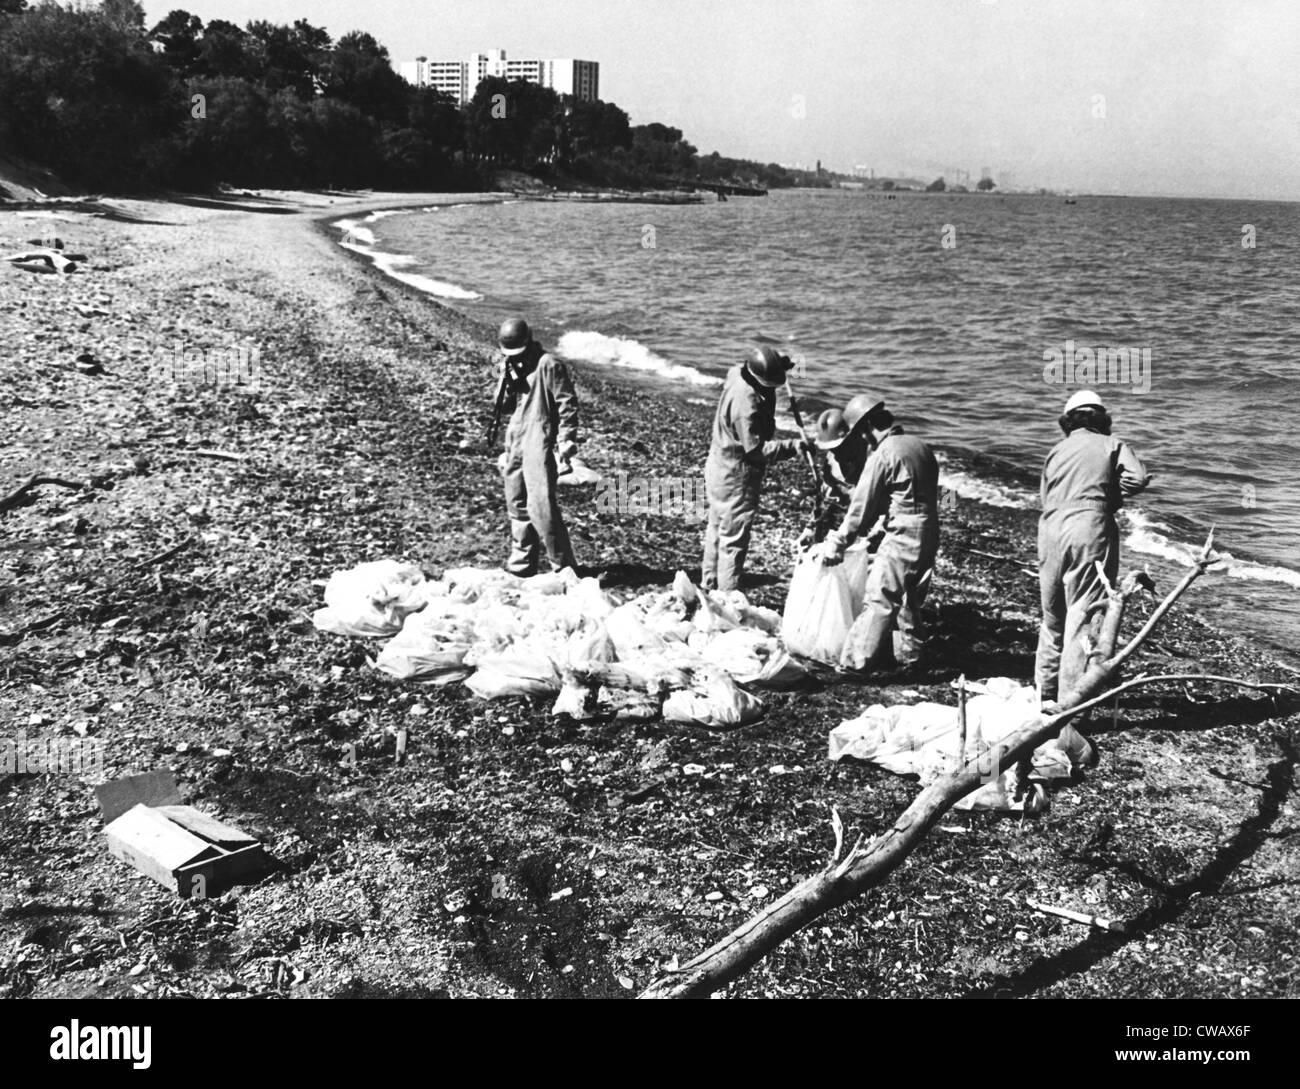 Workers cleaning up oil at the beach of Wildwood/Cleveland Lakefront State Park, ca. 1976. Courtesy: CSU Archives - Stock Image